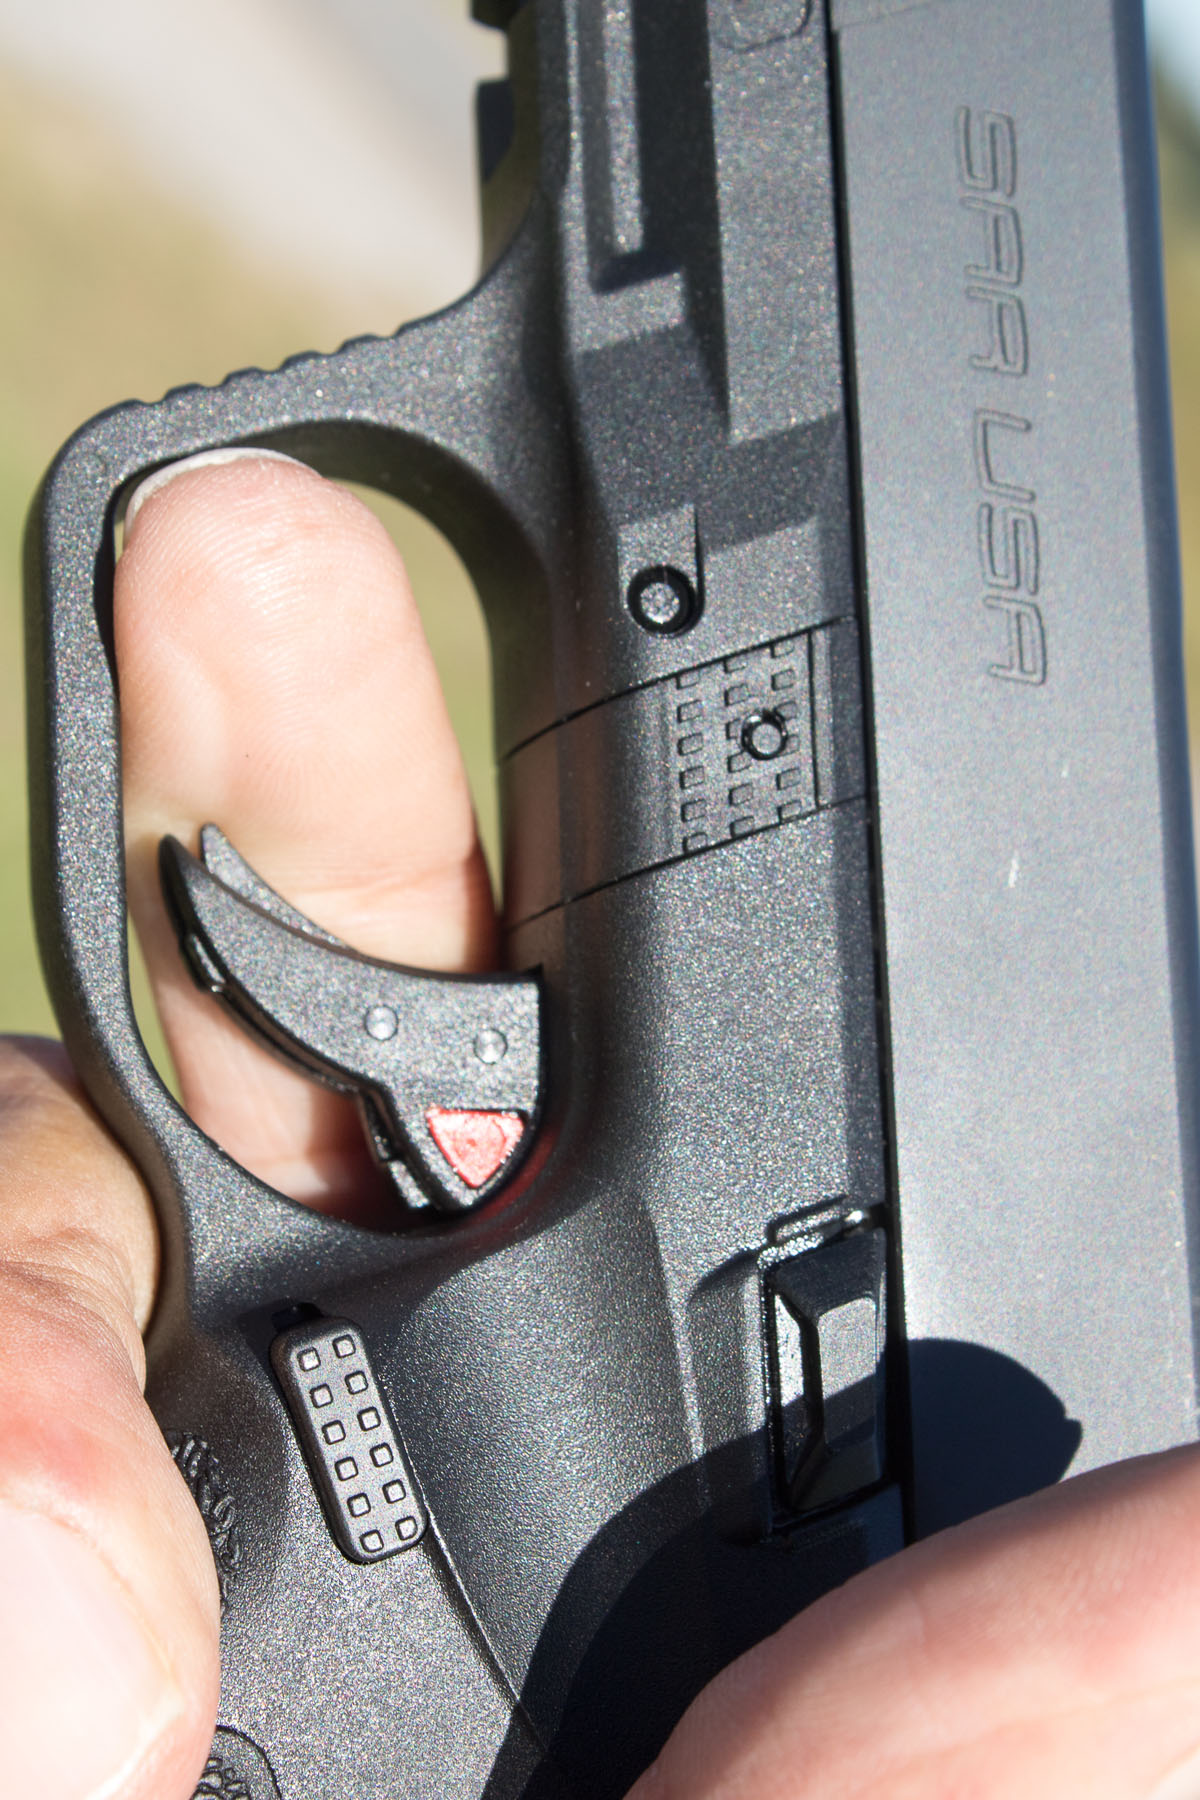 "Short trigger reach on SAR9 allows shooter to ""insert more finger"" and gain more leverage."